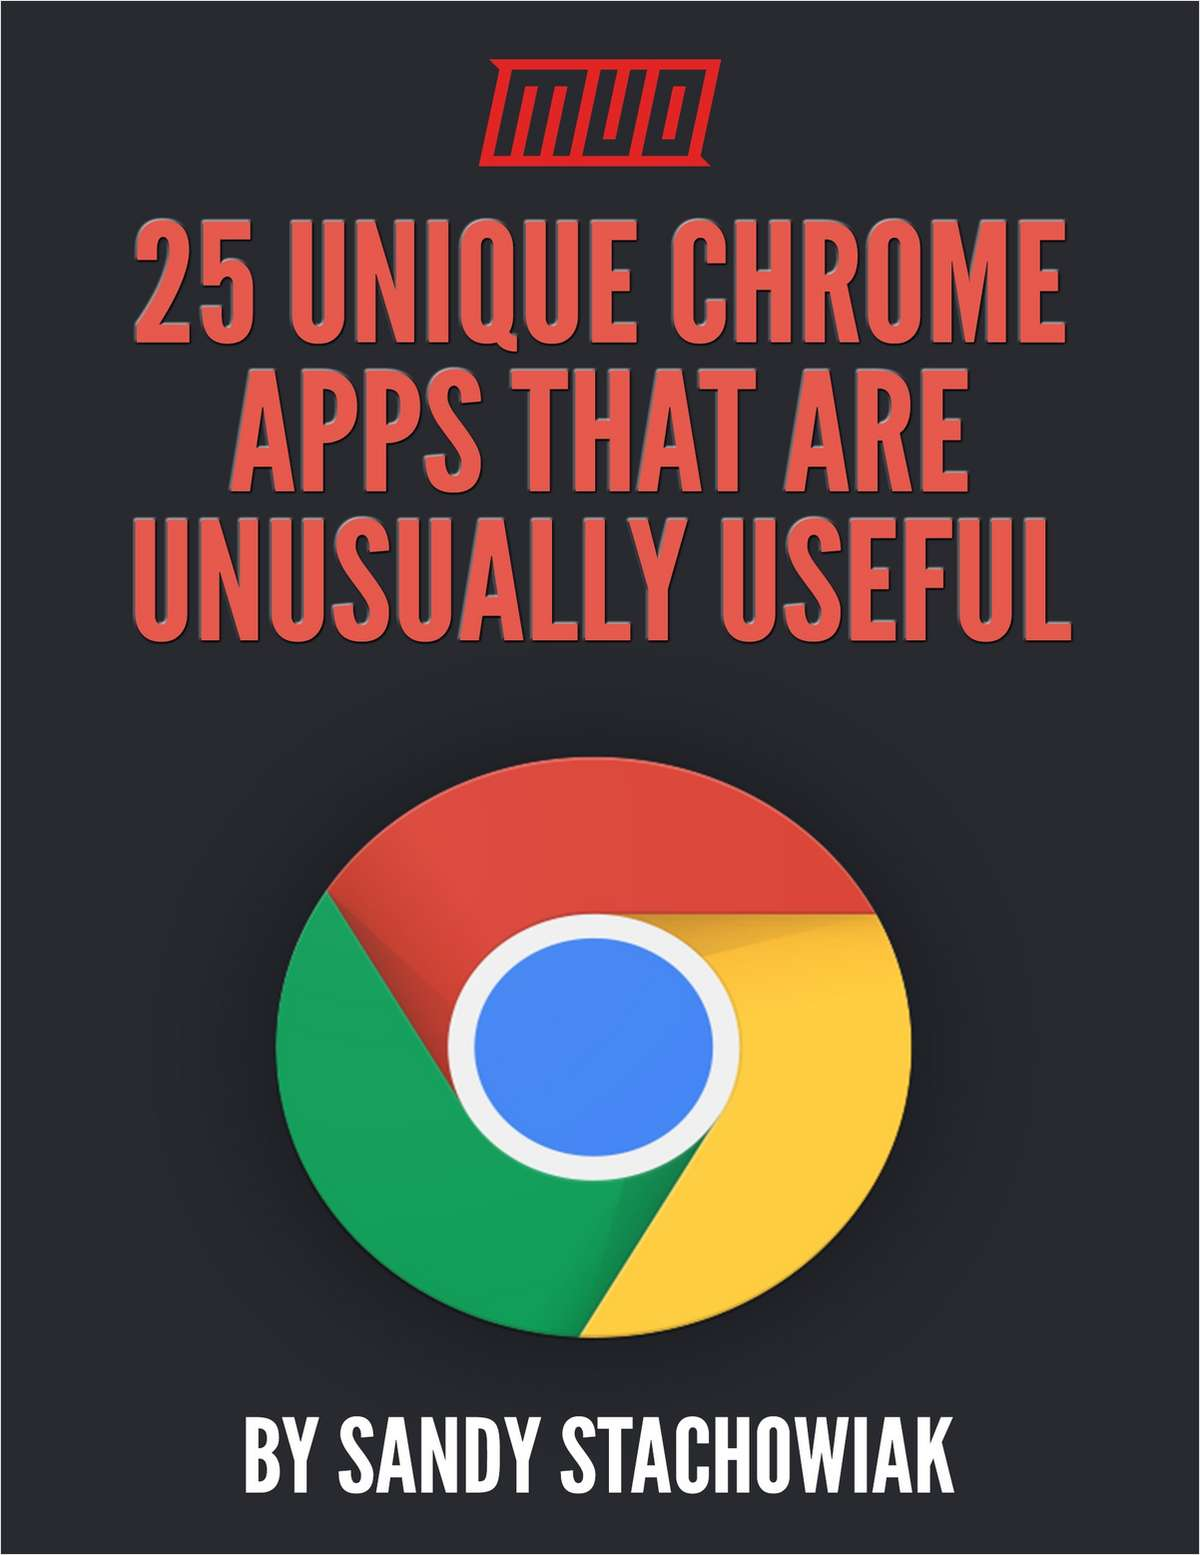 25 Unique Chrome Apps That Are Unusually Useful